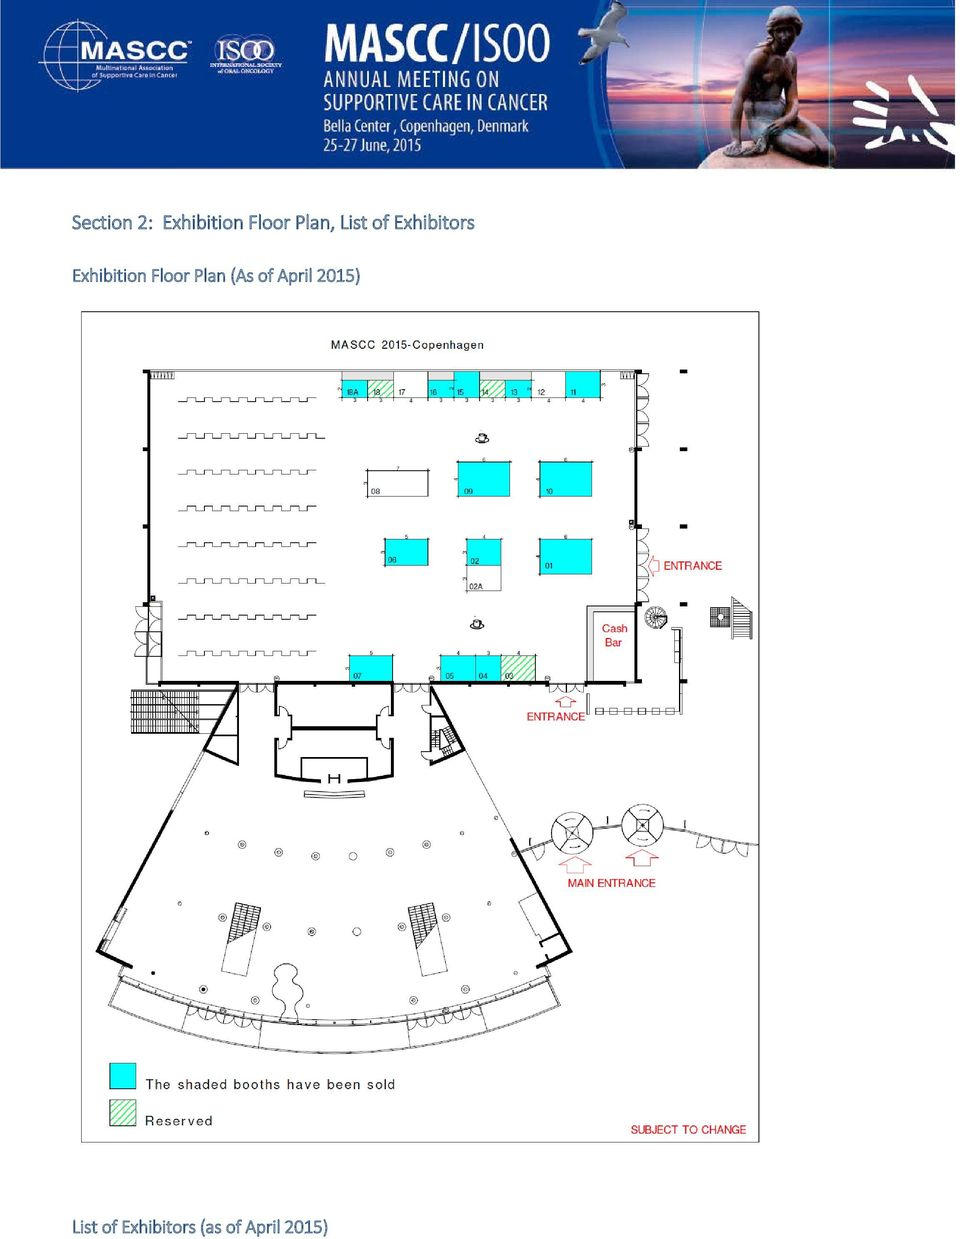 Exhibition Floor Plan (As of